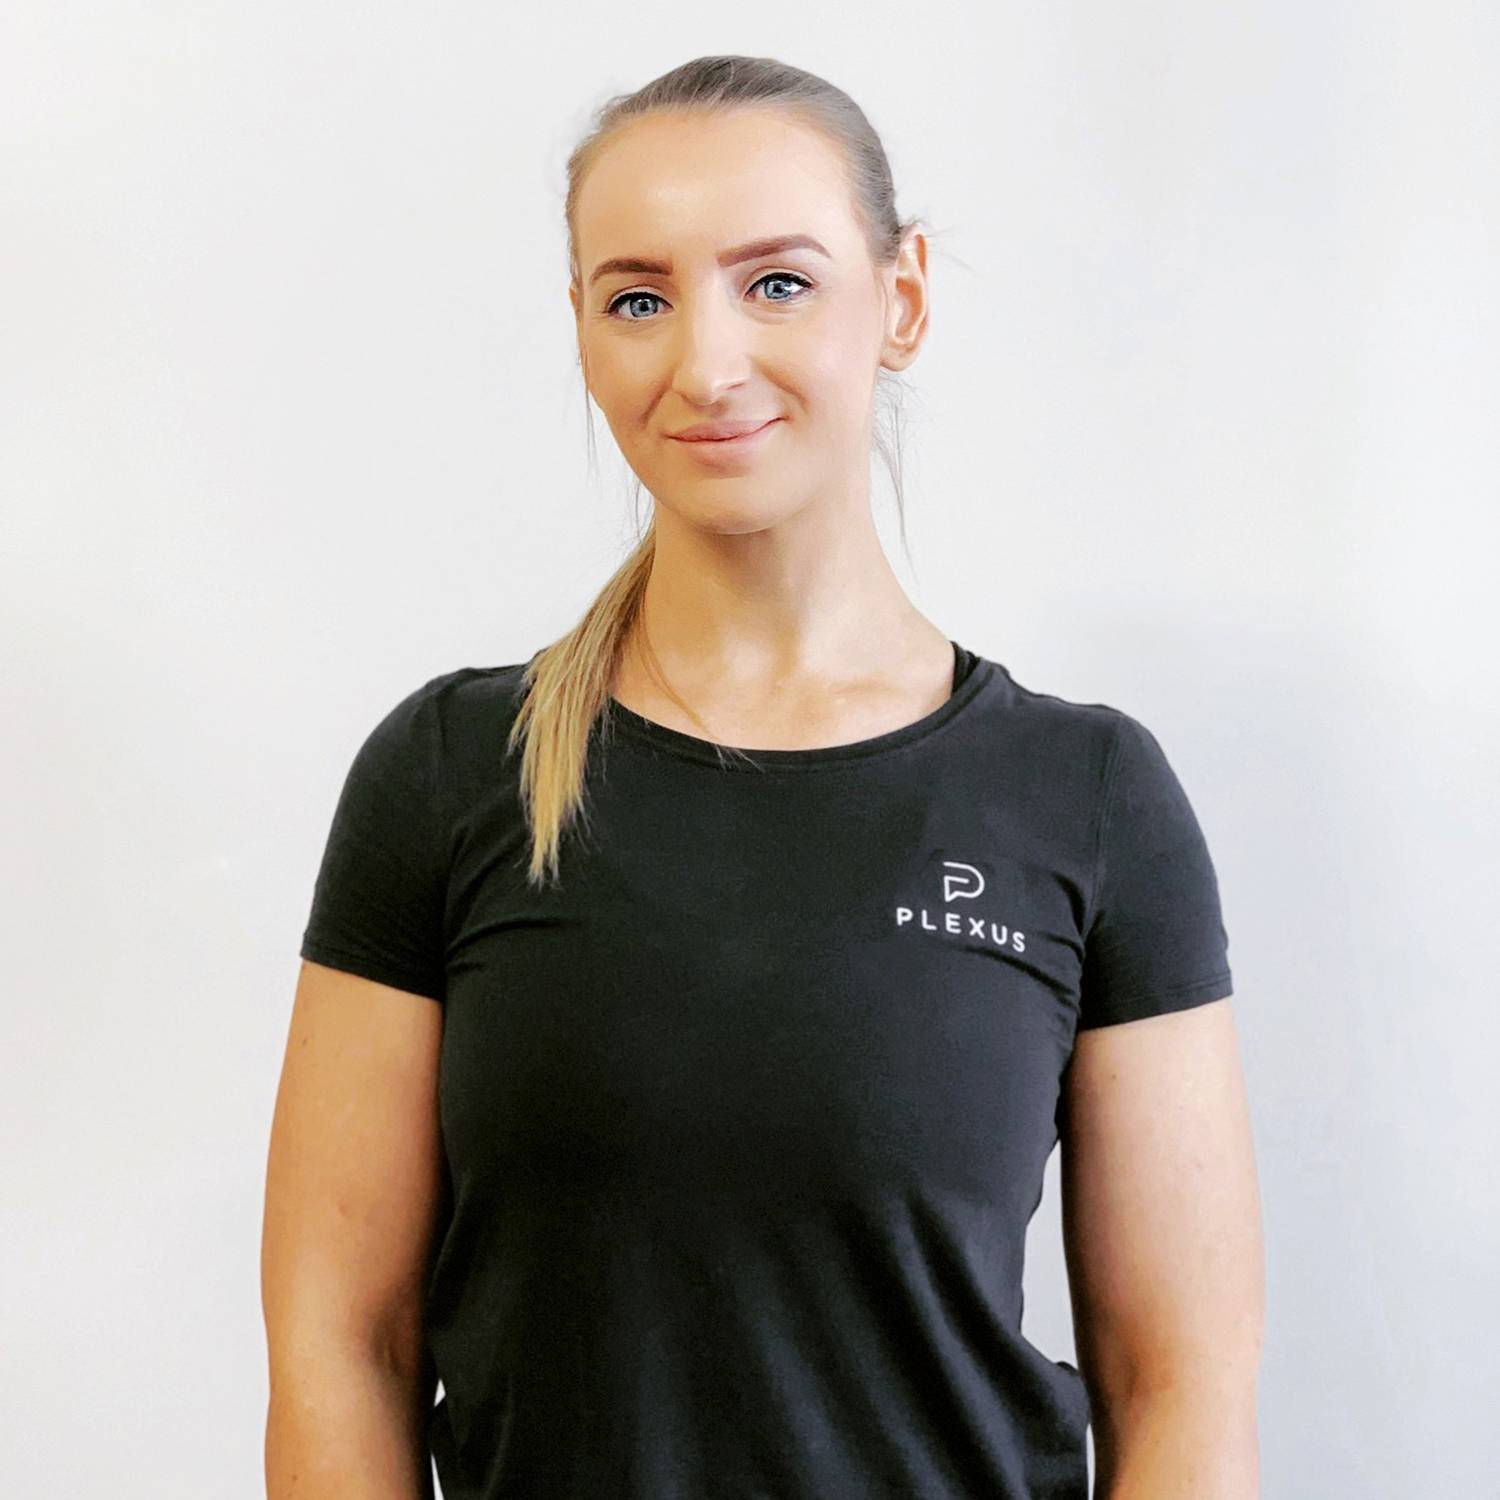 Personal Trainer & Nutritionist Rachael Fisher from Plexus Personal Training